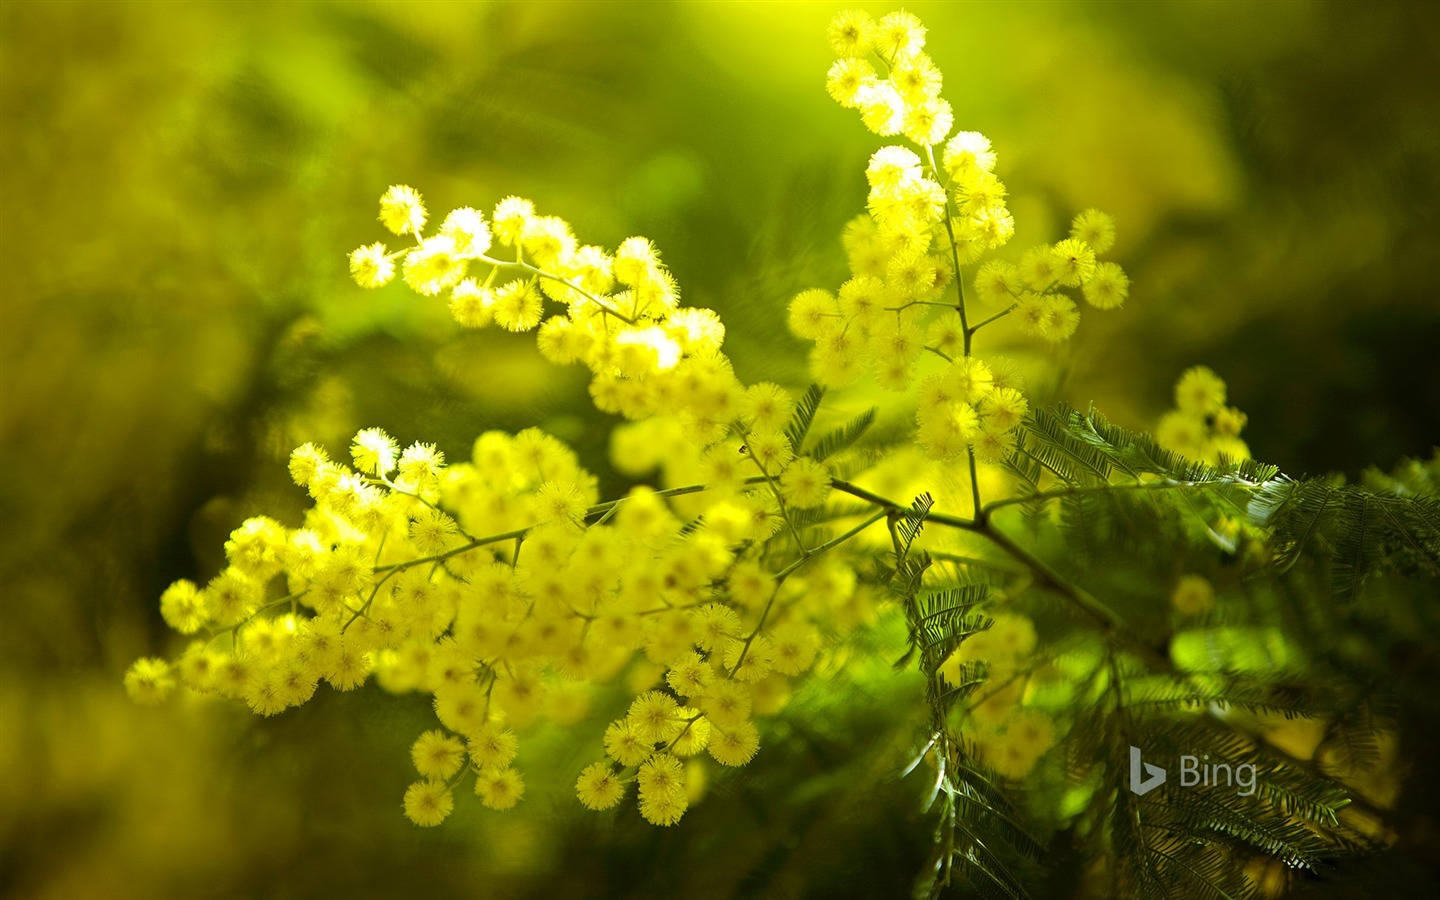 Yellow Mimosa Flowers France 2018 Bing Wallpaper Preview 10wallpaper Com